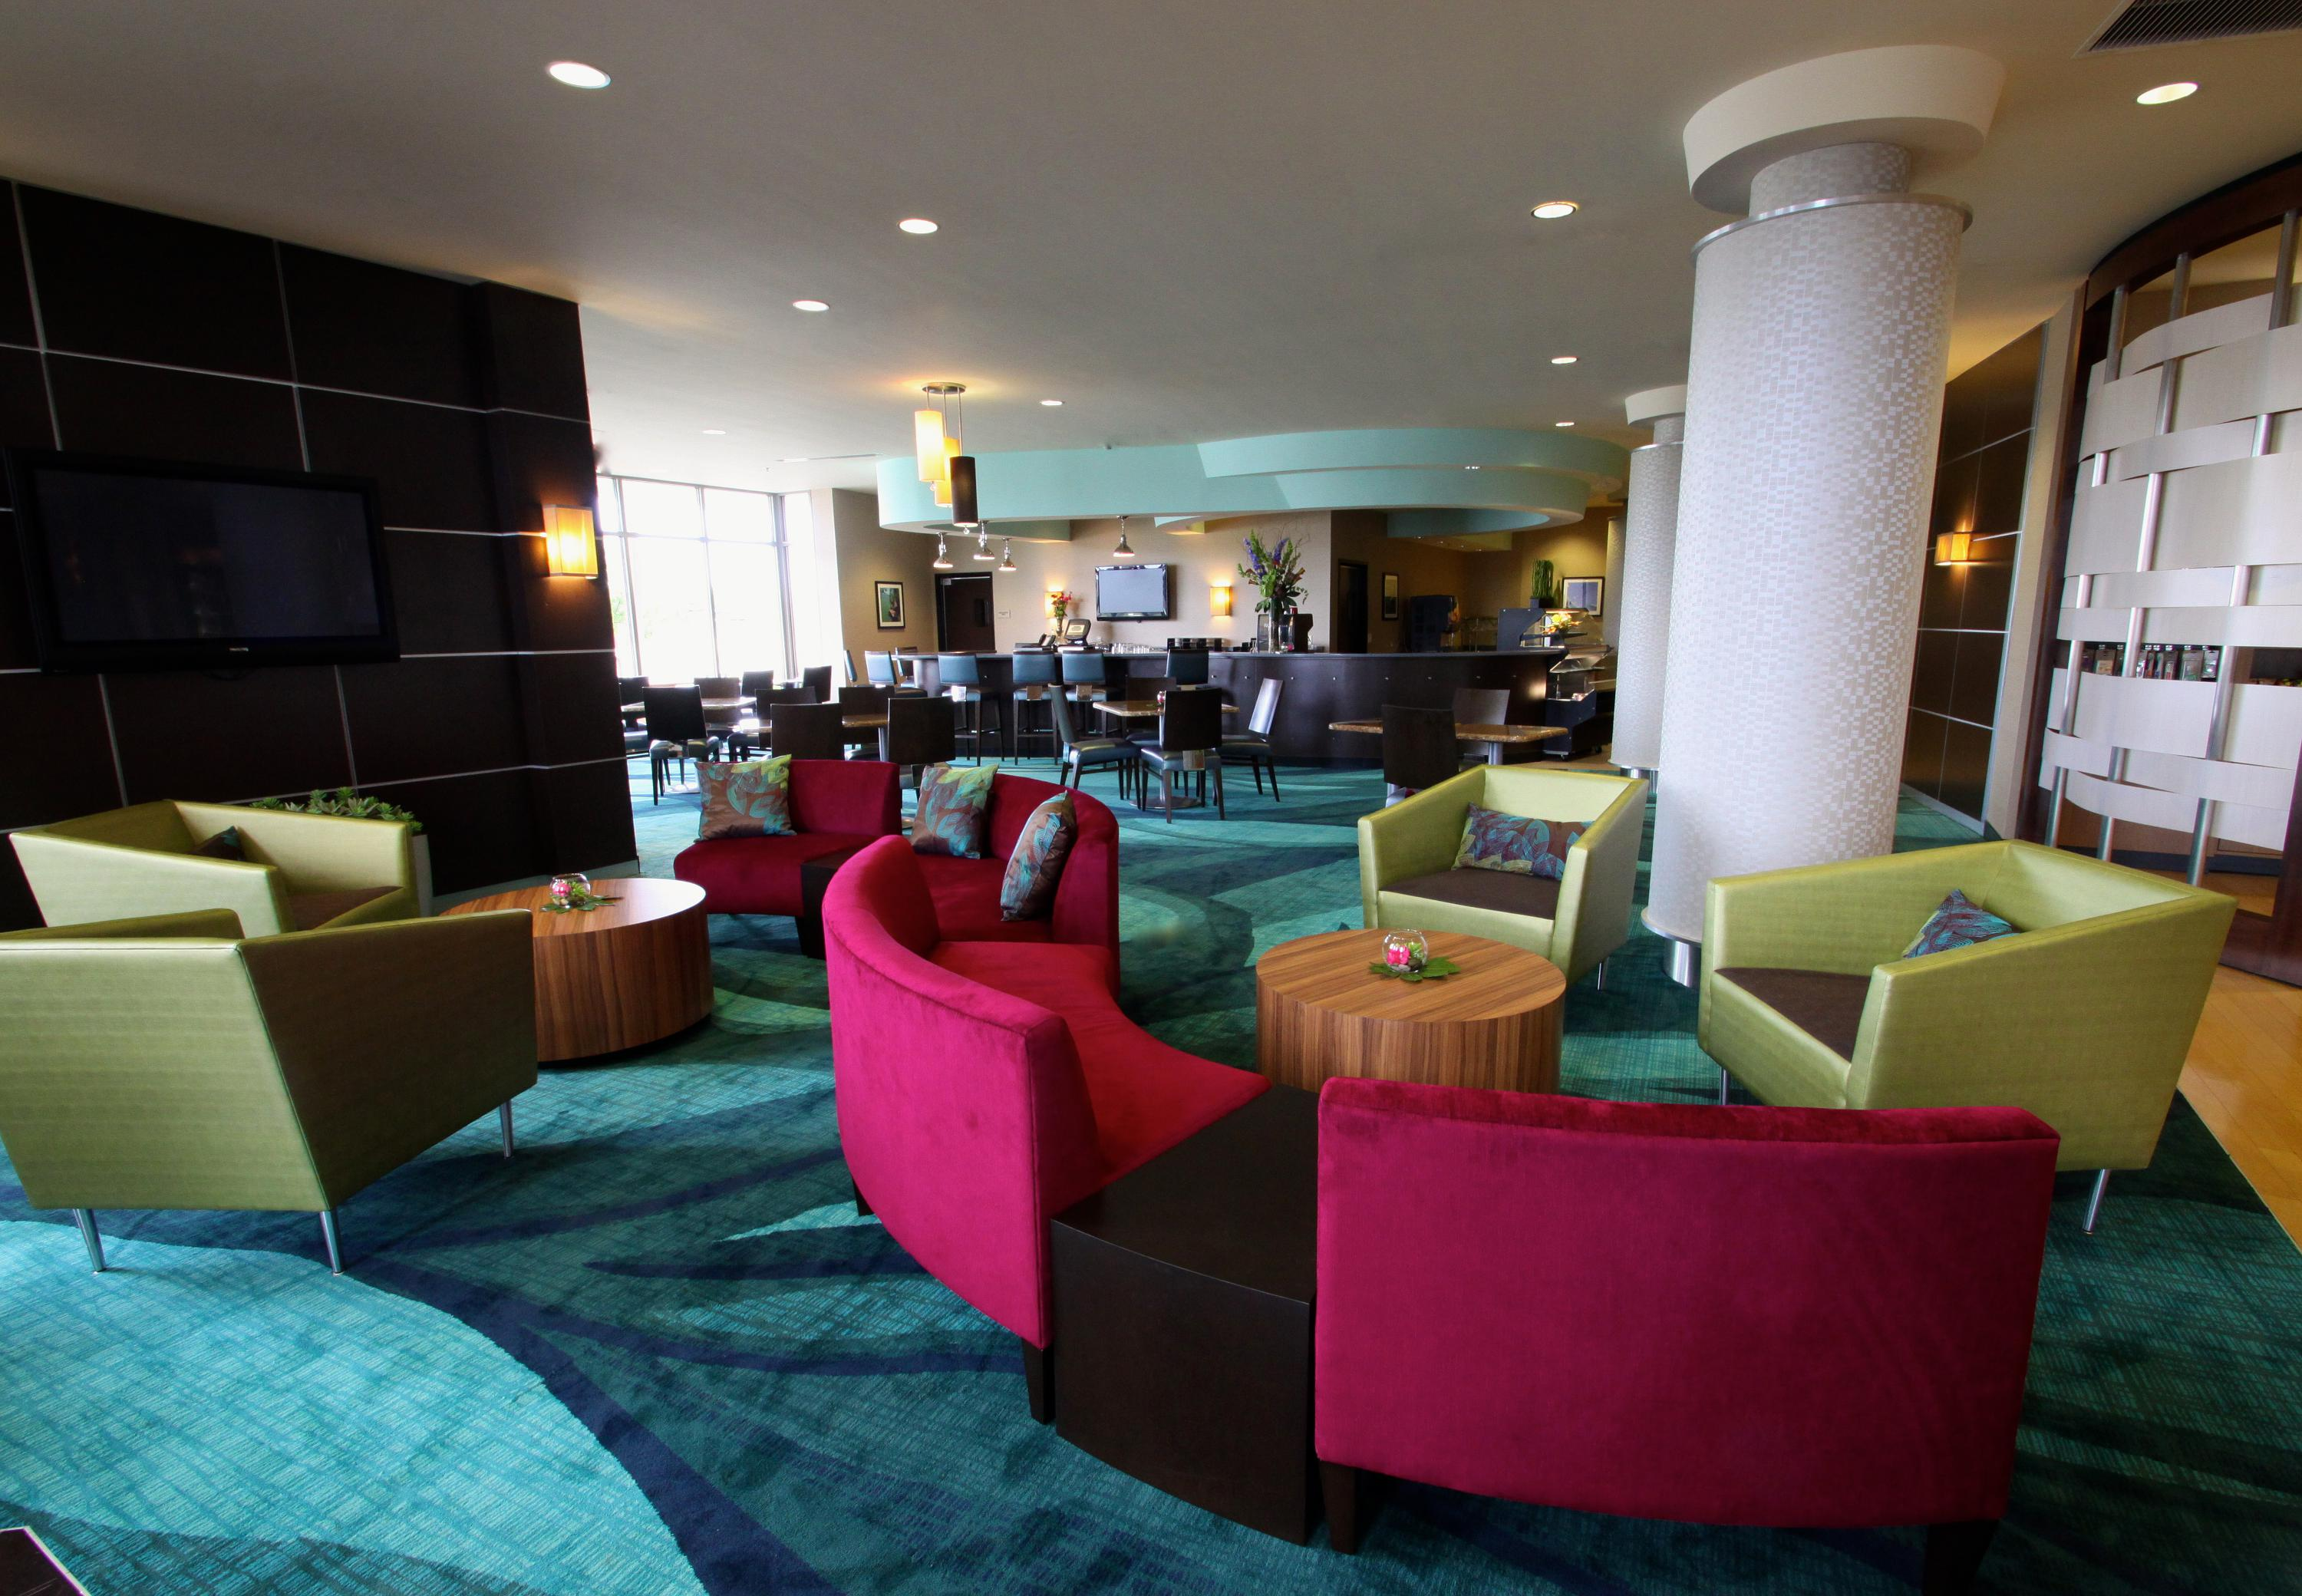 SpringHill Suites by Marriott Green Bay image 6